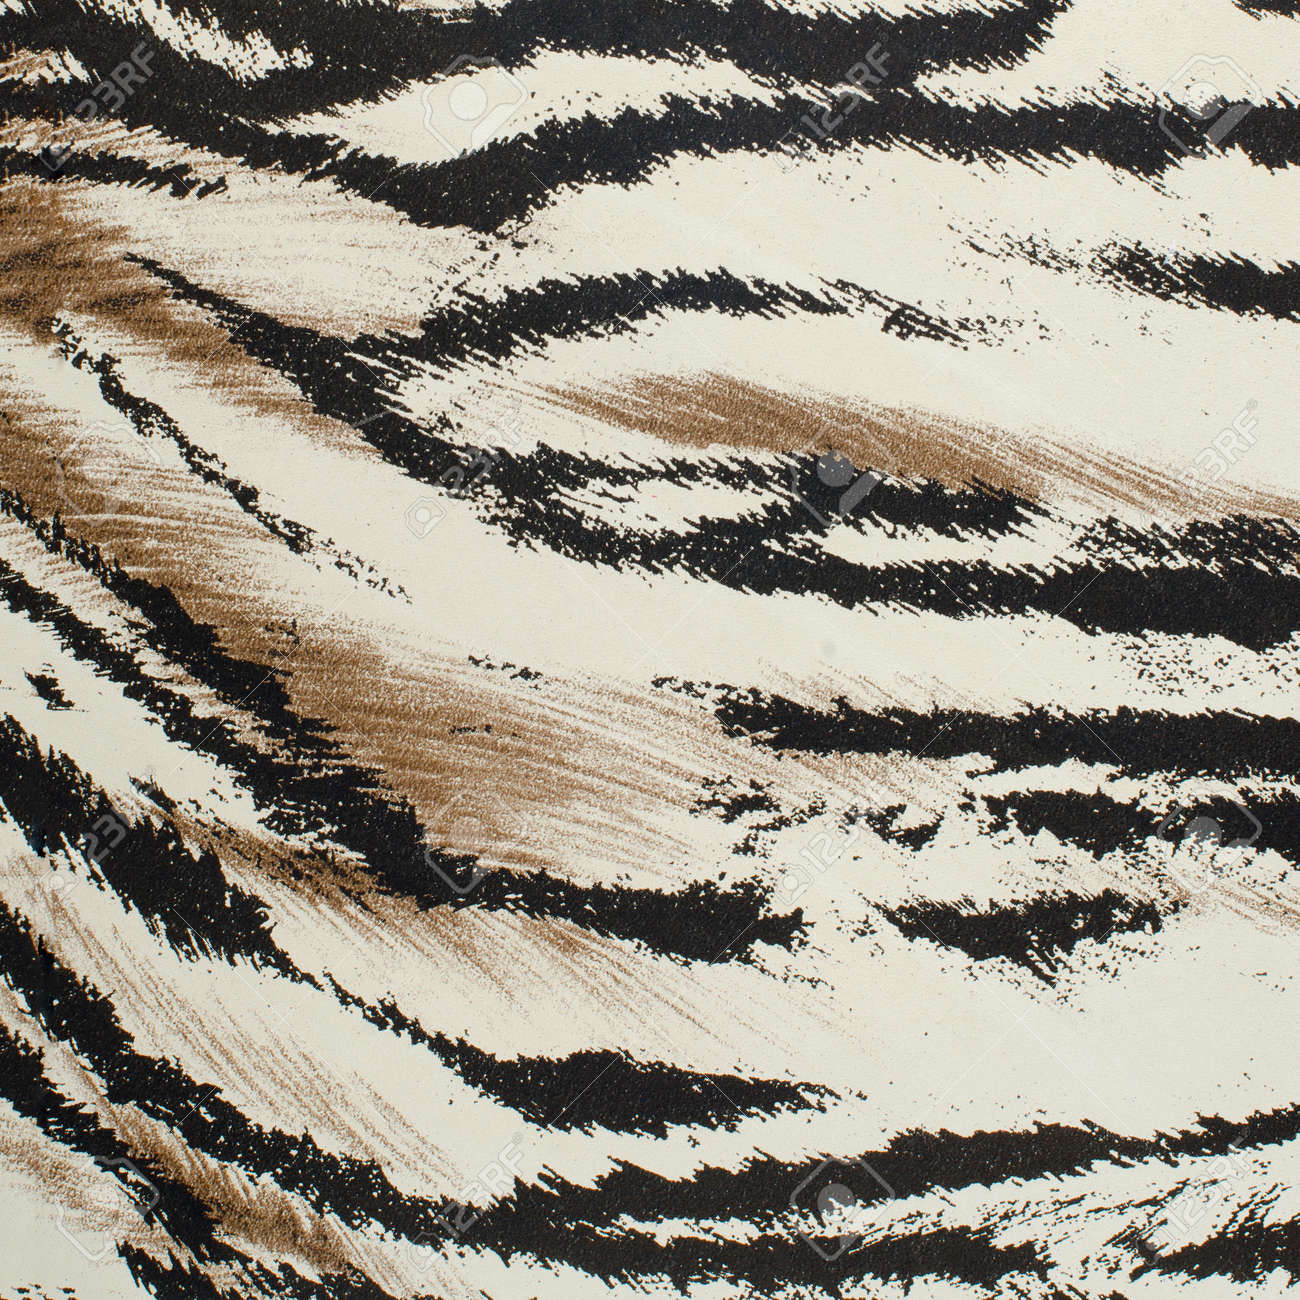 Brown and white tiger skin artificial pattern background. - 17834030